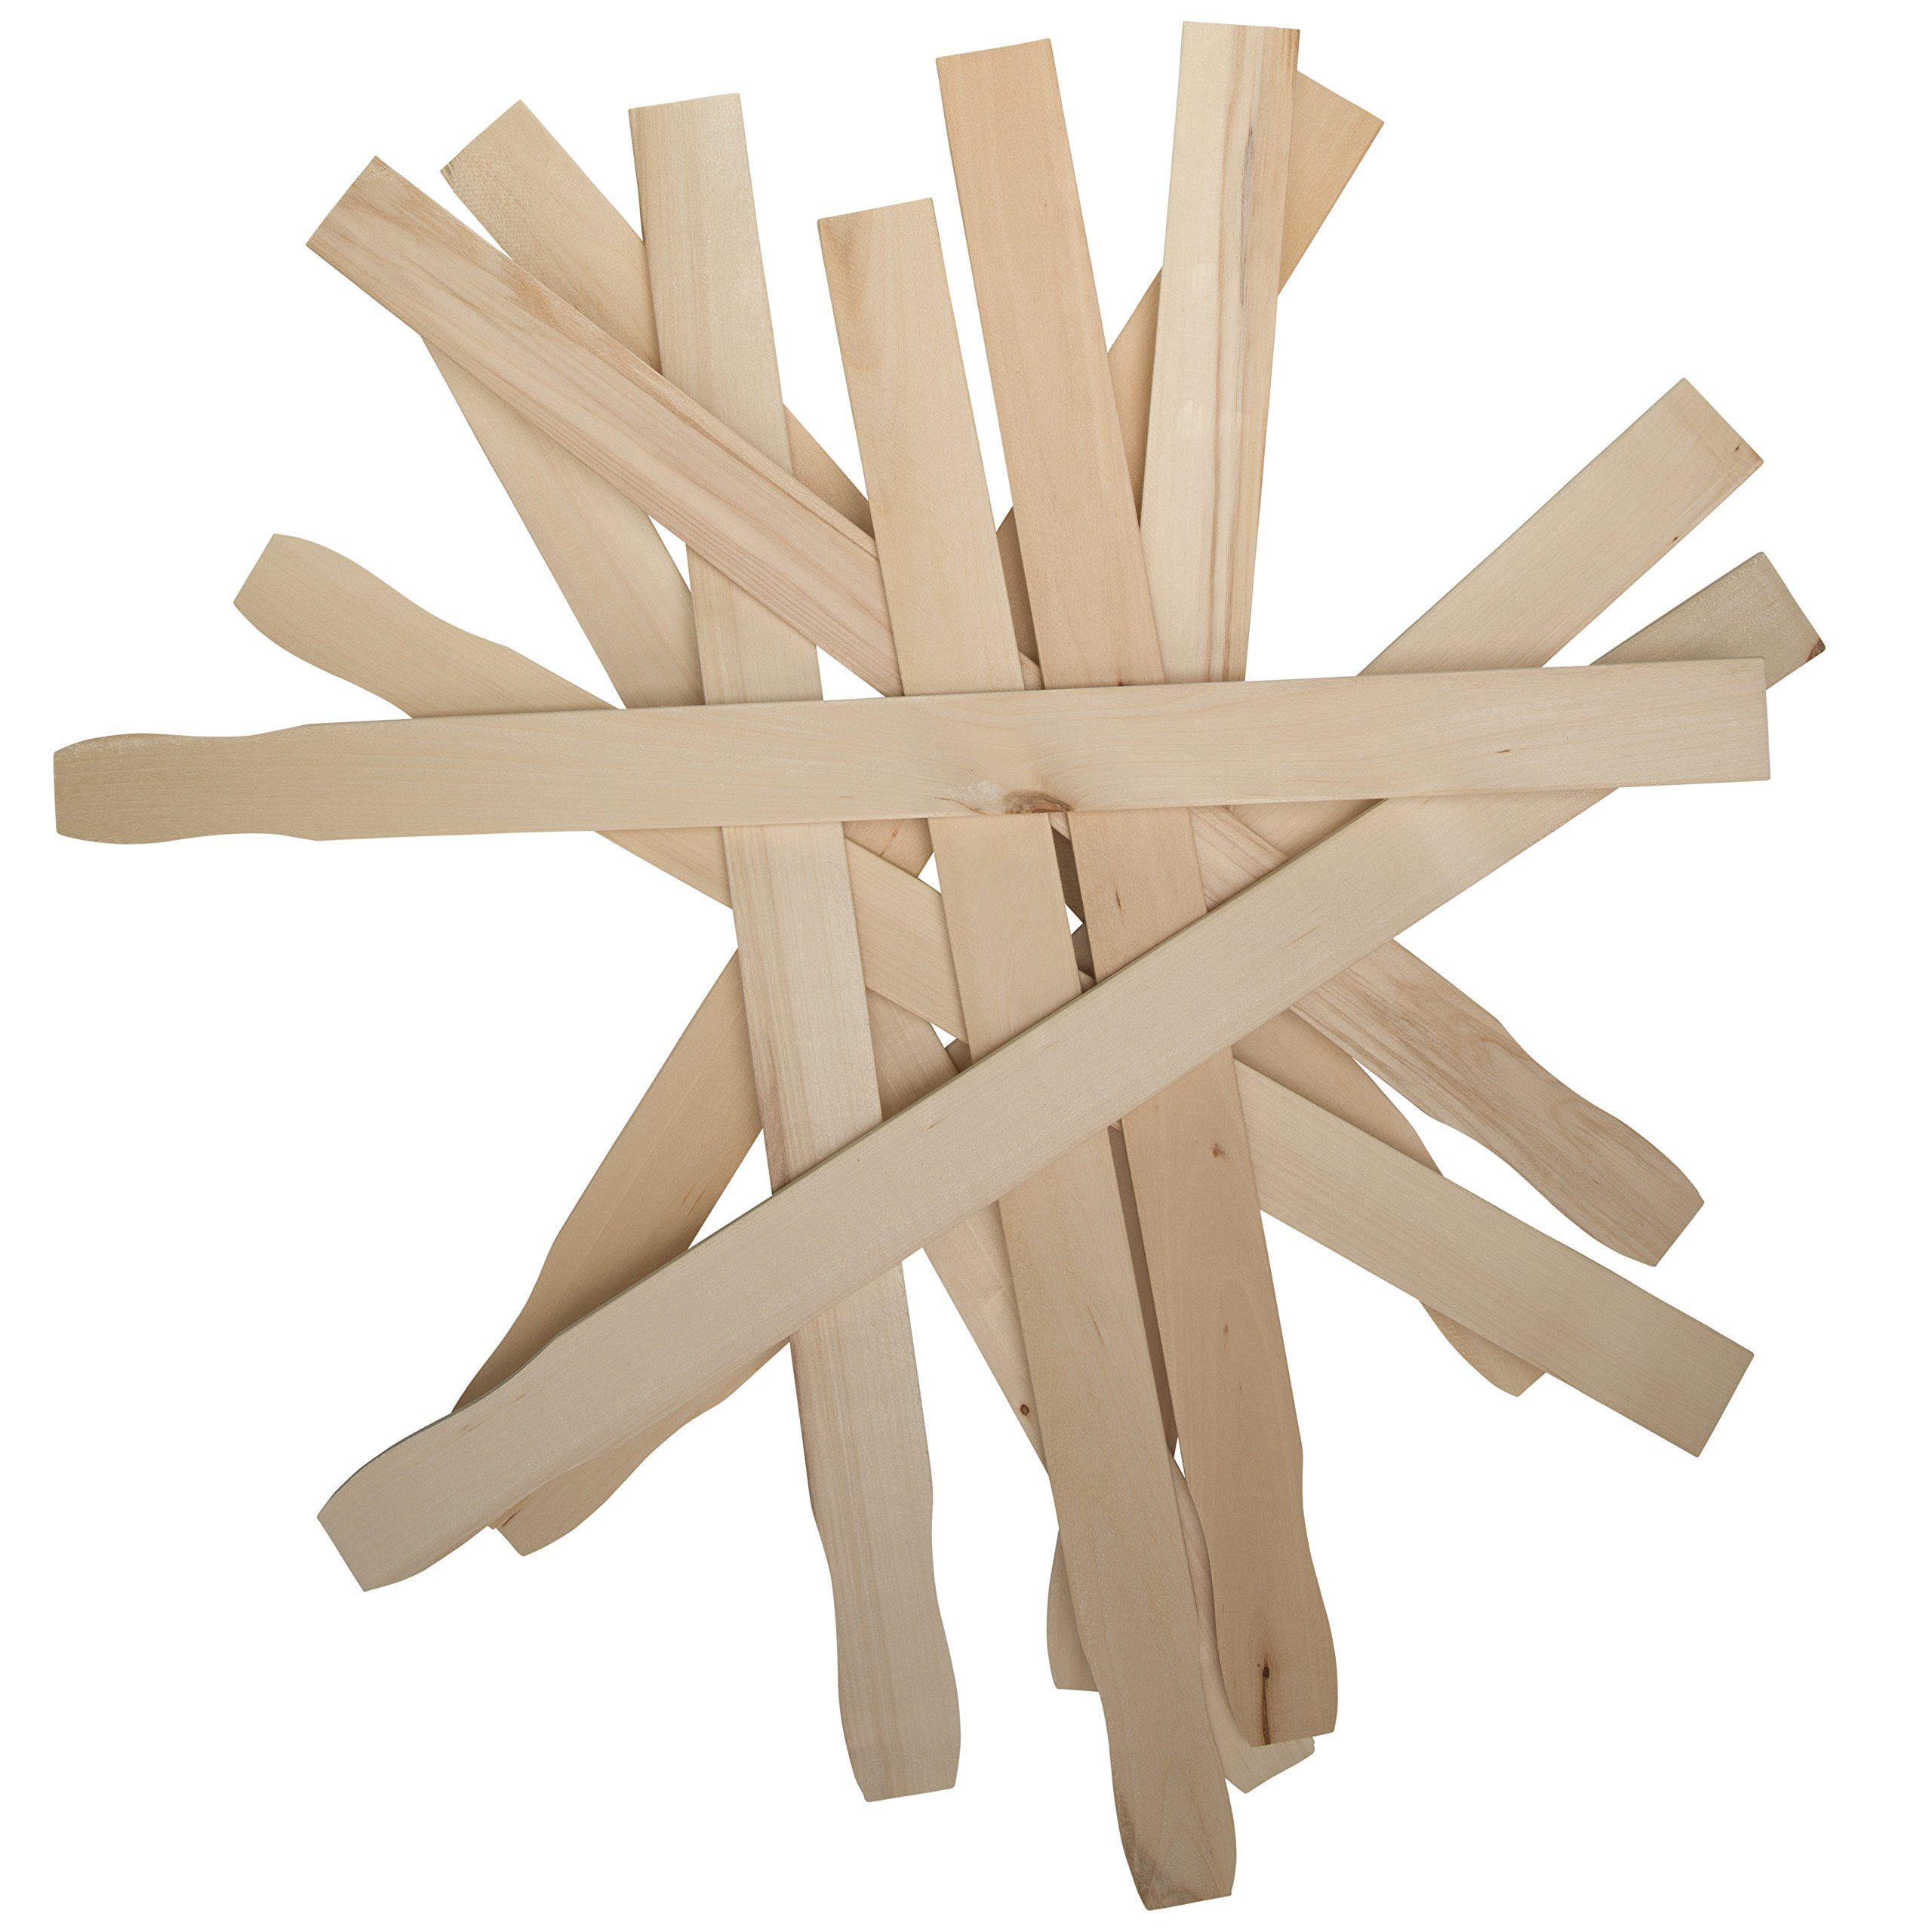 Paint Sticks 12 Inch Paddles -Bulk Pack of 100 Sanded Hardwood Stirrers- Paint stirring, Wax, Mix Epoxy, Resin or Slime making - For Wood Crafts, Garden or Library Markers – By Woodpeckers